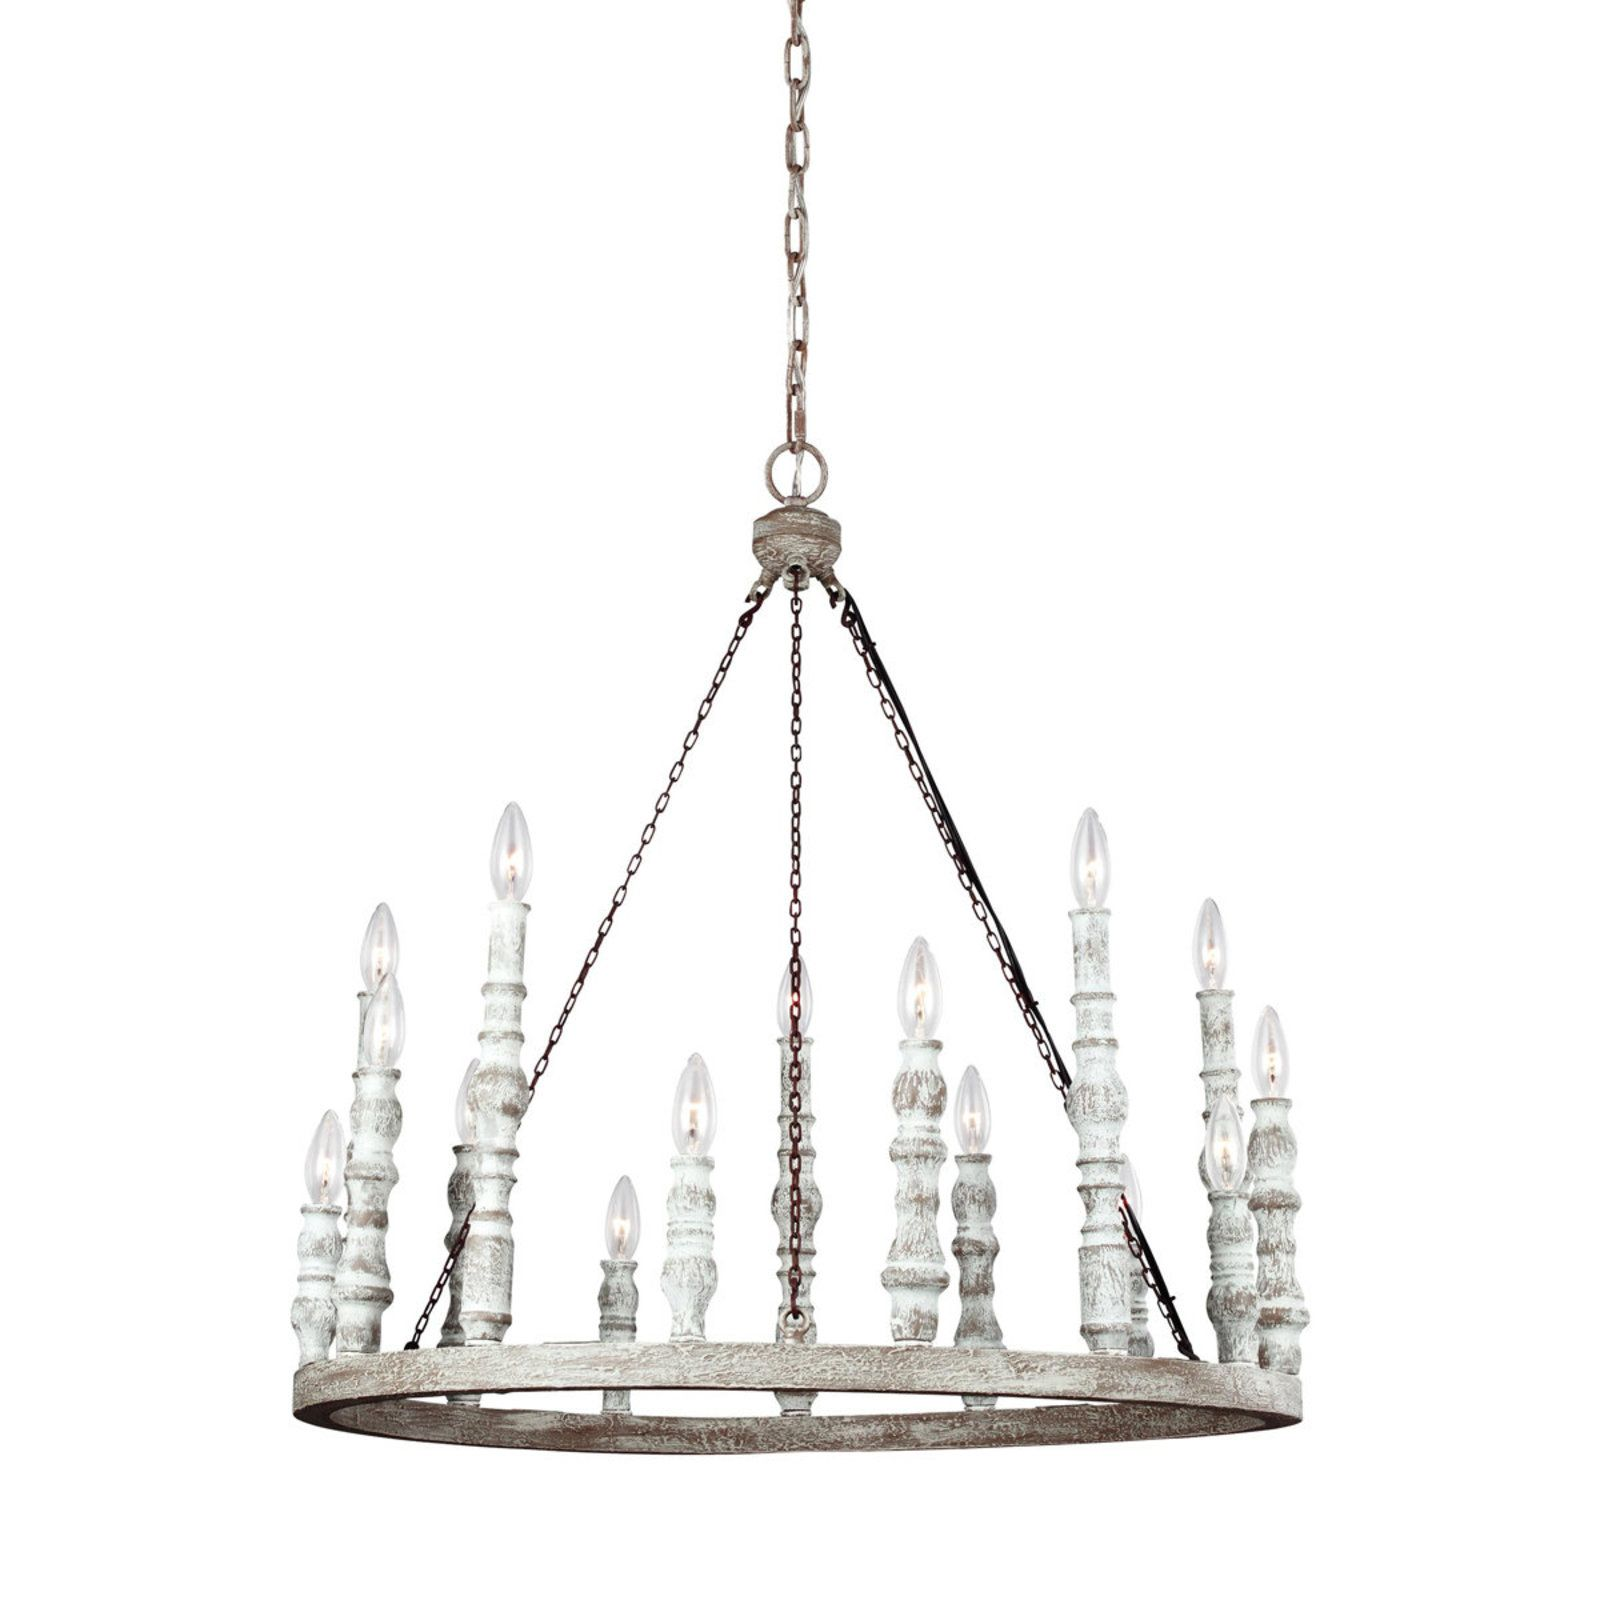 Distressed eclectic candlestick chandelier chandeliers chandelier distressed eclectic candlestick chandelier shades of light aloadofball Images